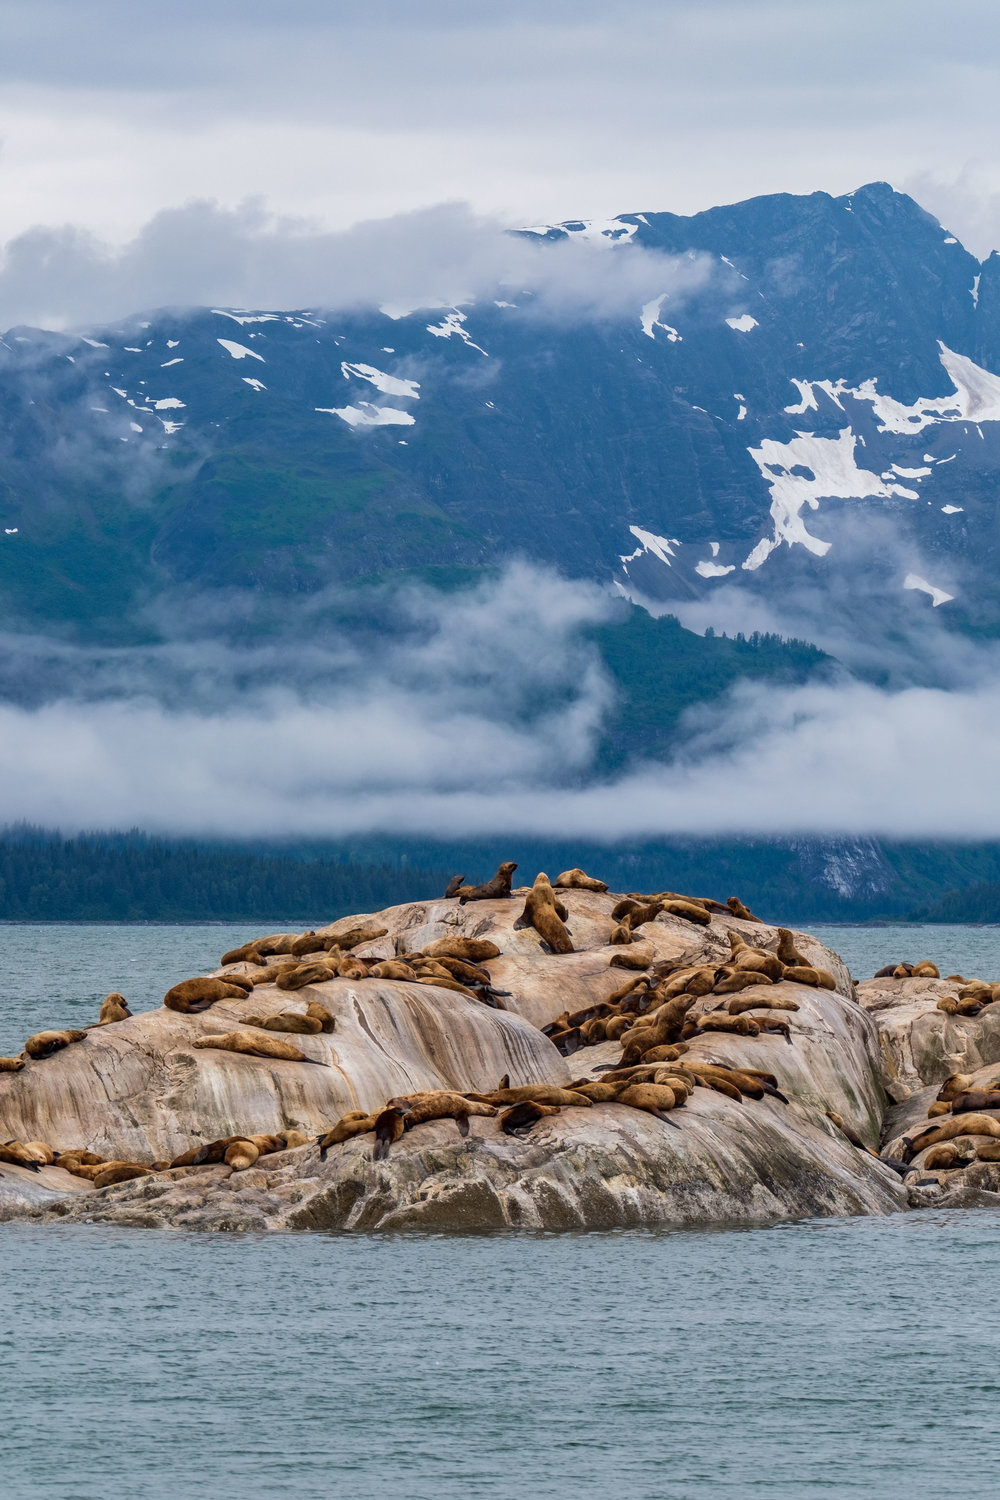 Harbor seals hang out at their home in Glacier Bay, Alaska.